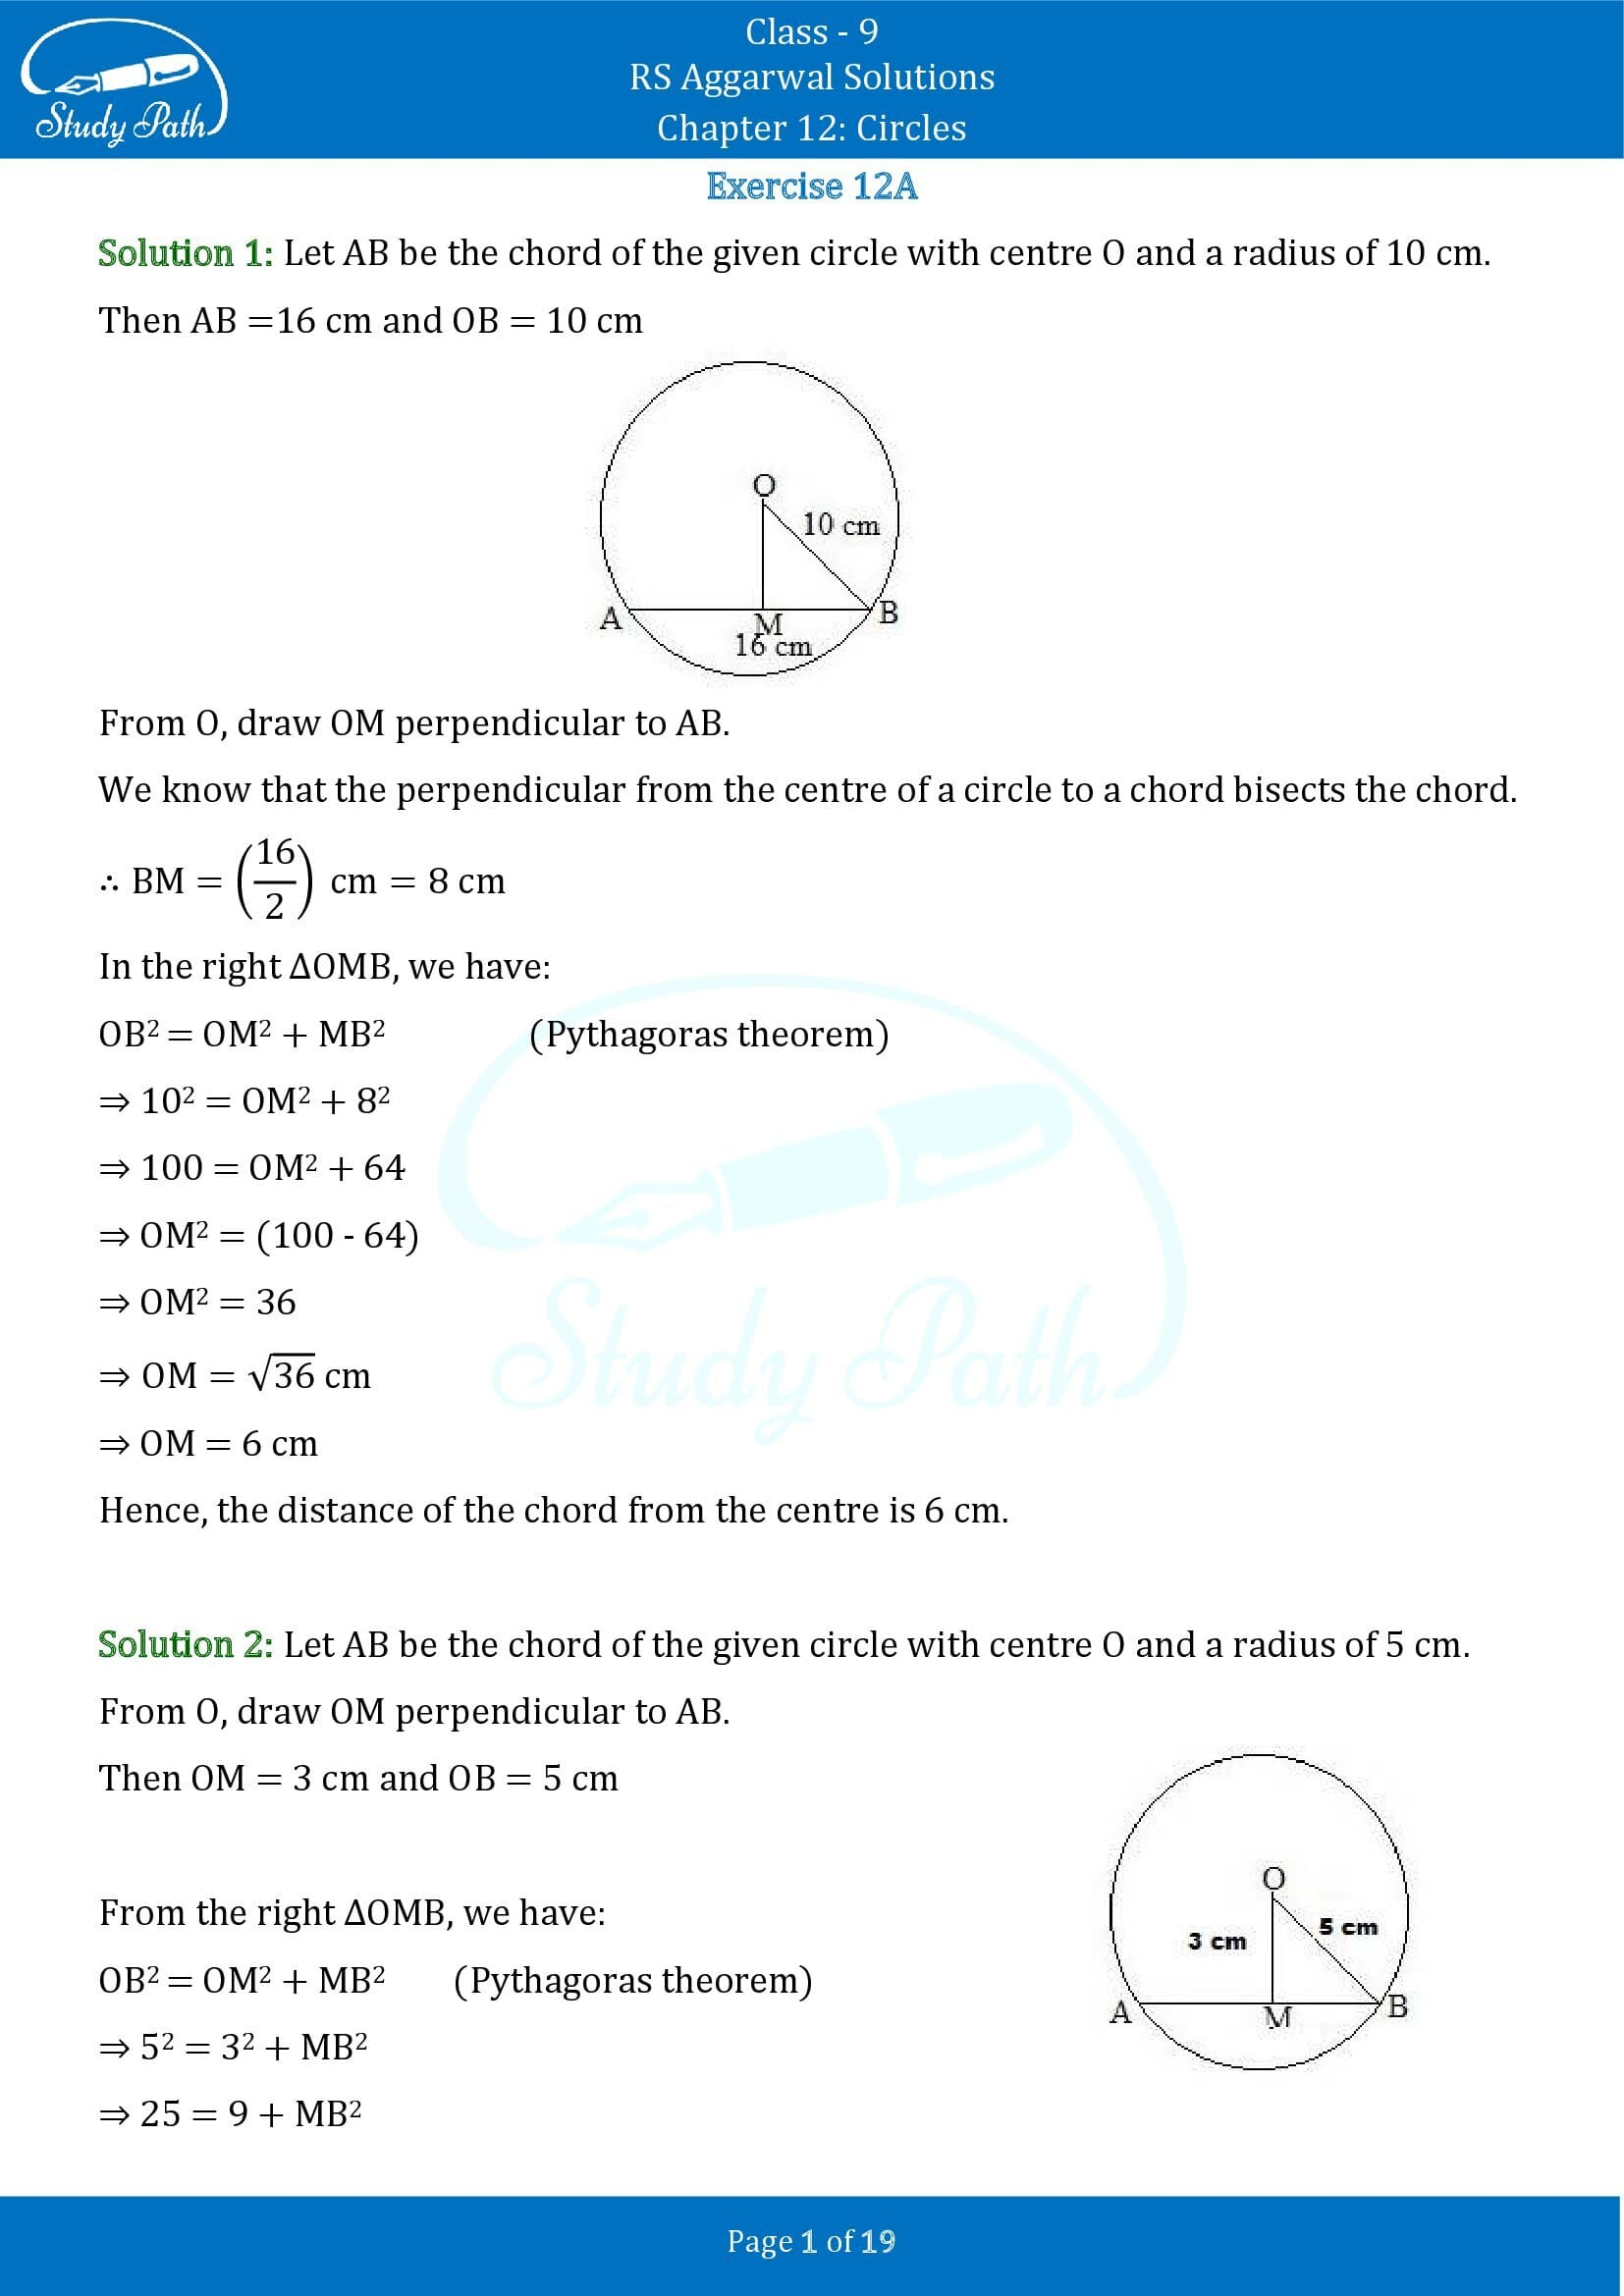 RS Aggarwal Solutions Class 9 Chapter 12 Circles Exercise 12A 00001